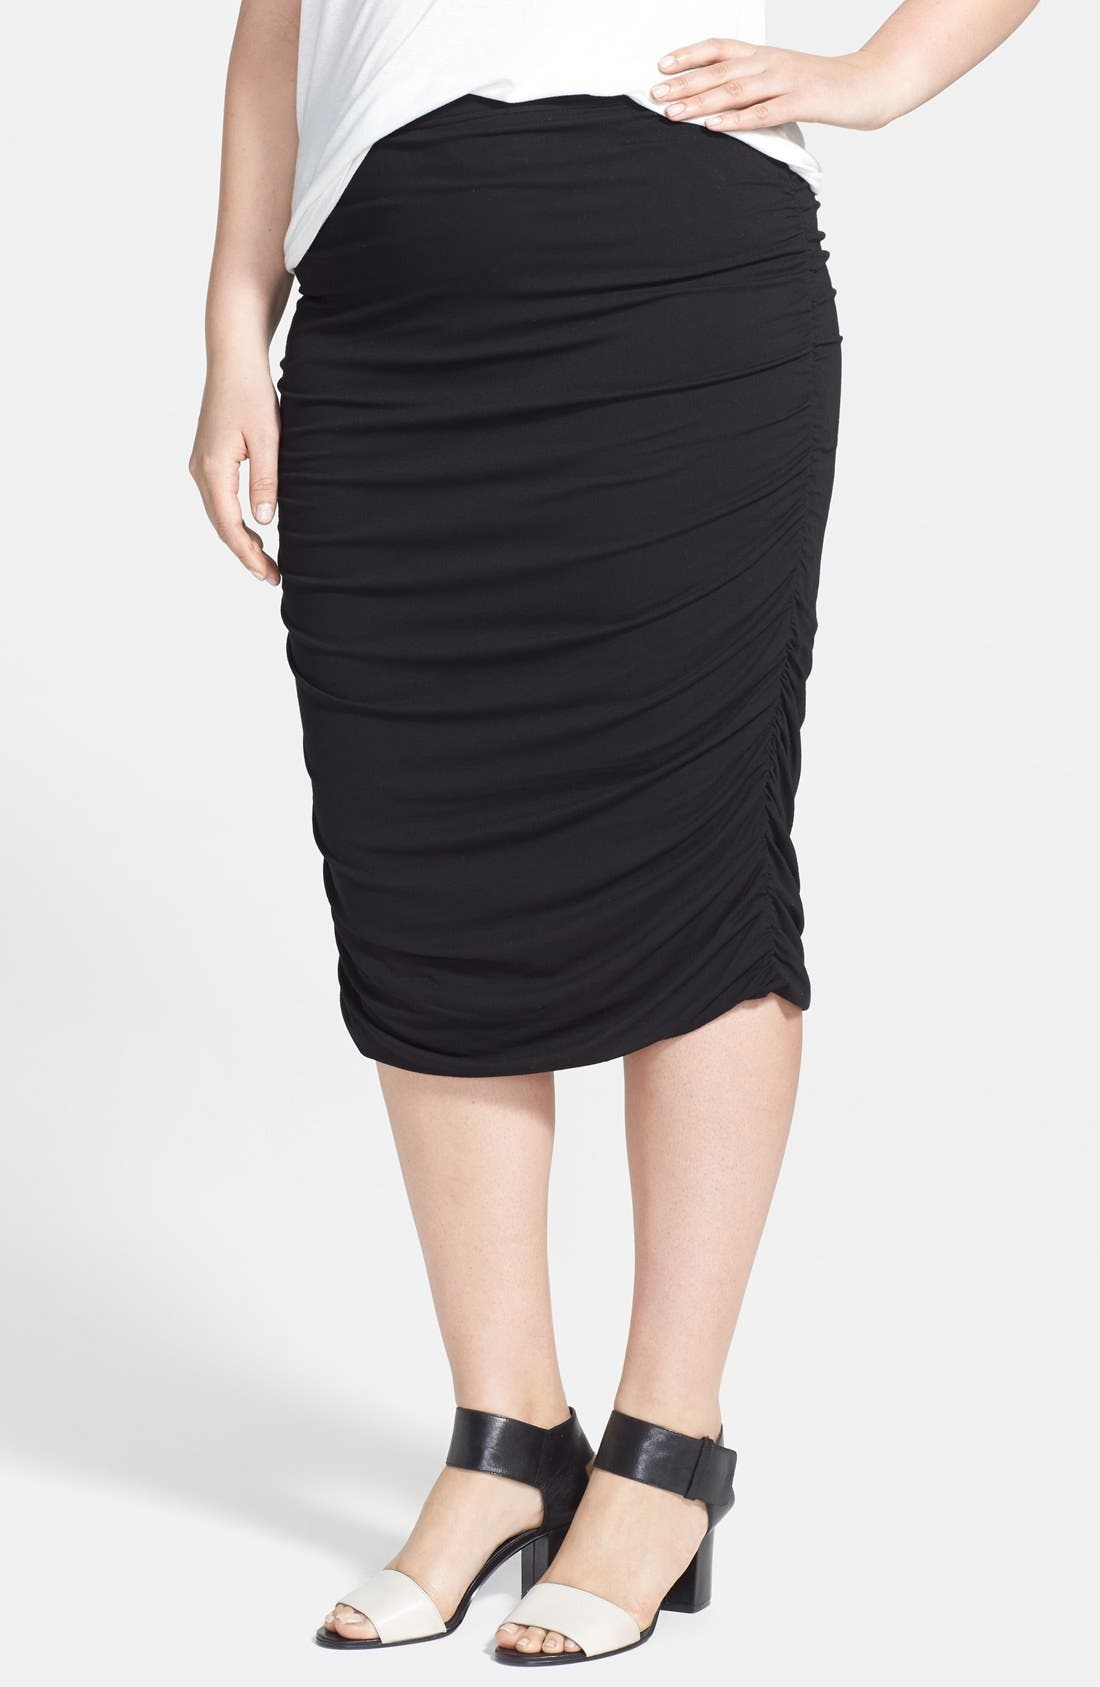 Alternate Image 1 Selected - Vince Camuto Ruched Stretch Knit Midi Skirt (Plus Size)